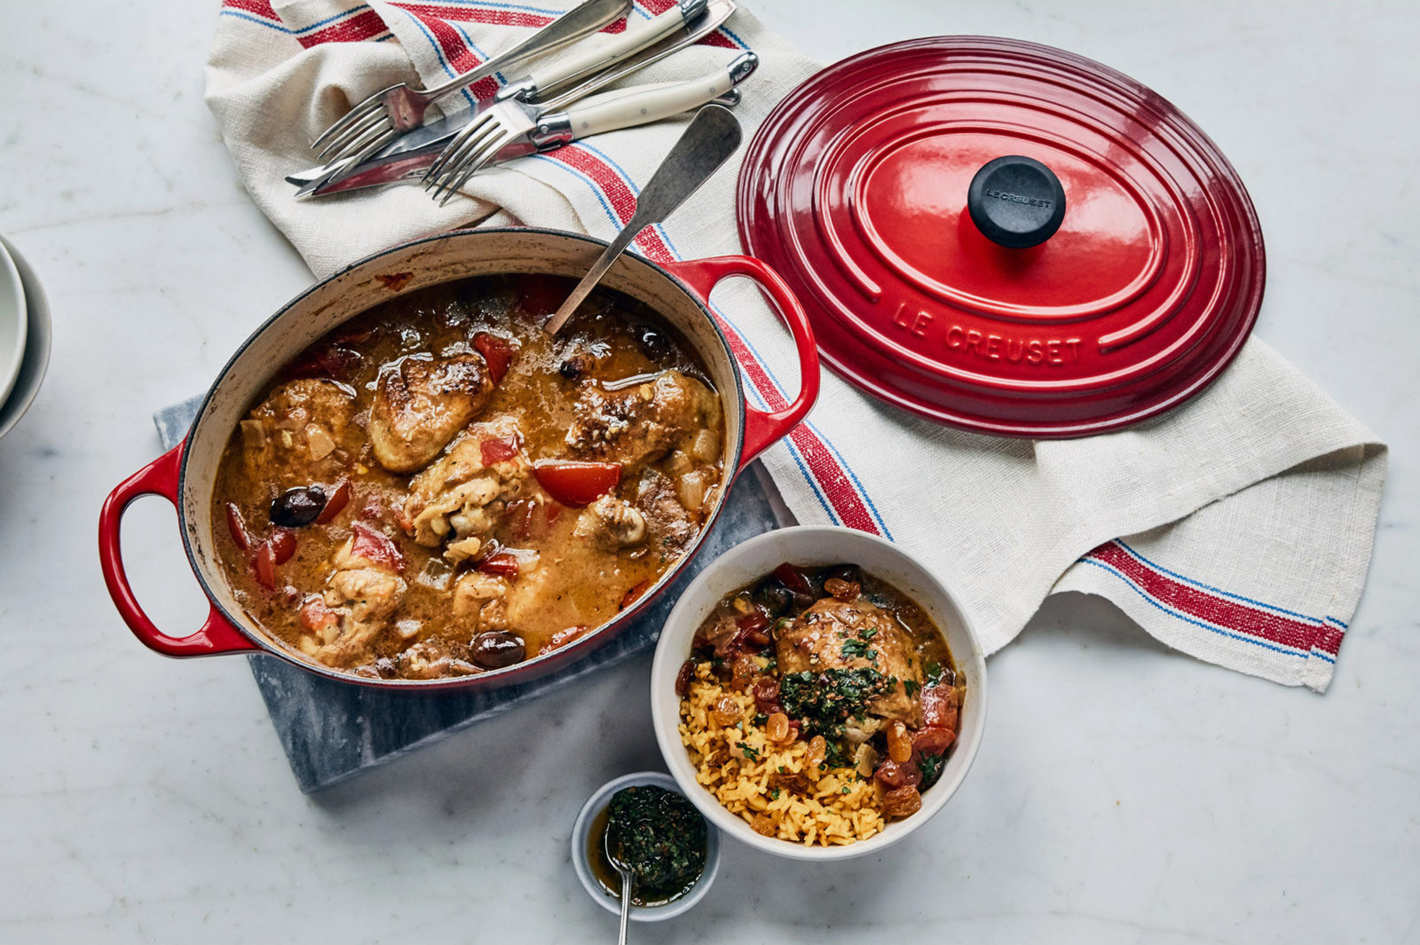 Le Creuset Signature 5 Qt. Oval Dutch Oven